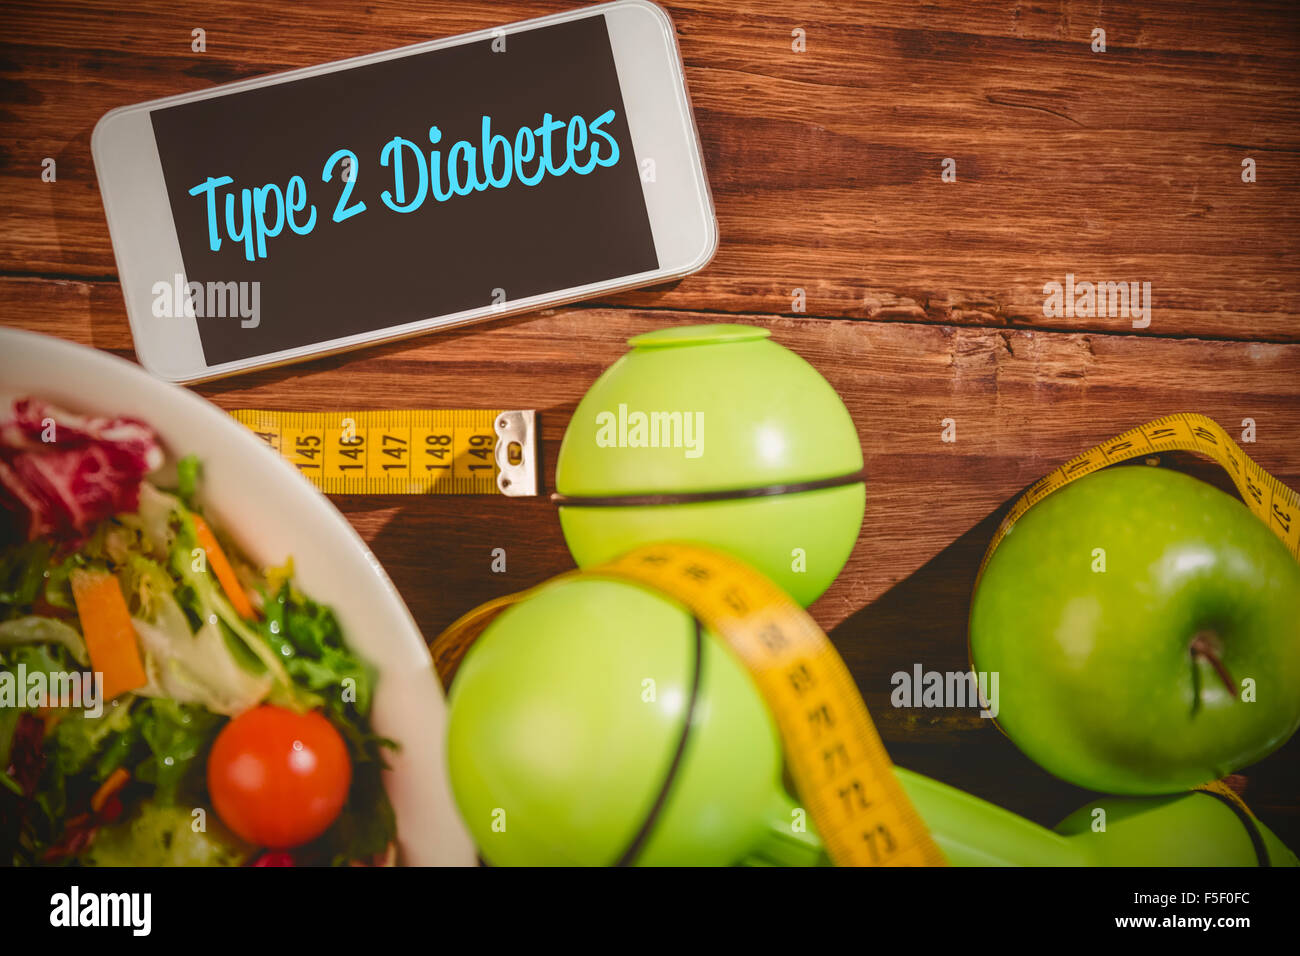 Type 2 diabetes against phone on healthy persons desk - Stock Image